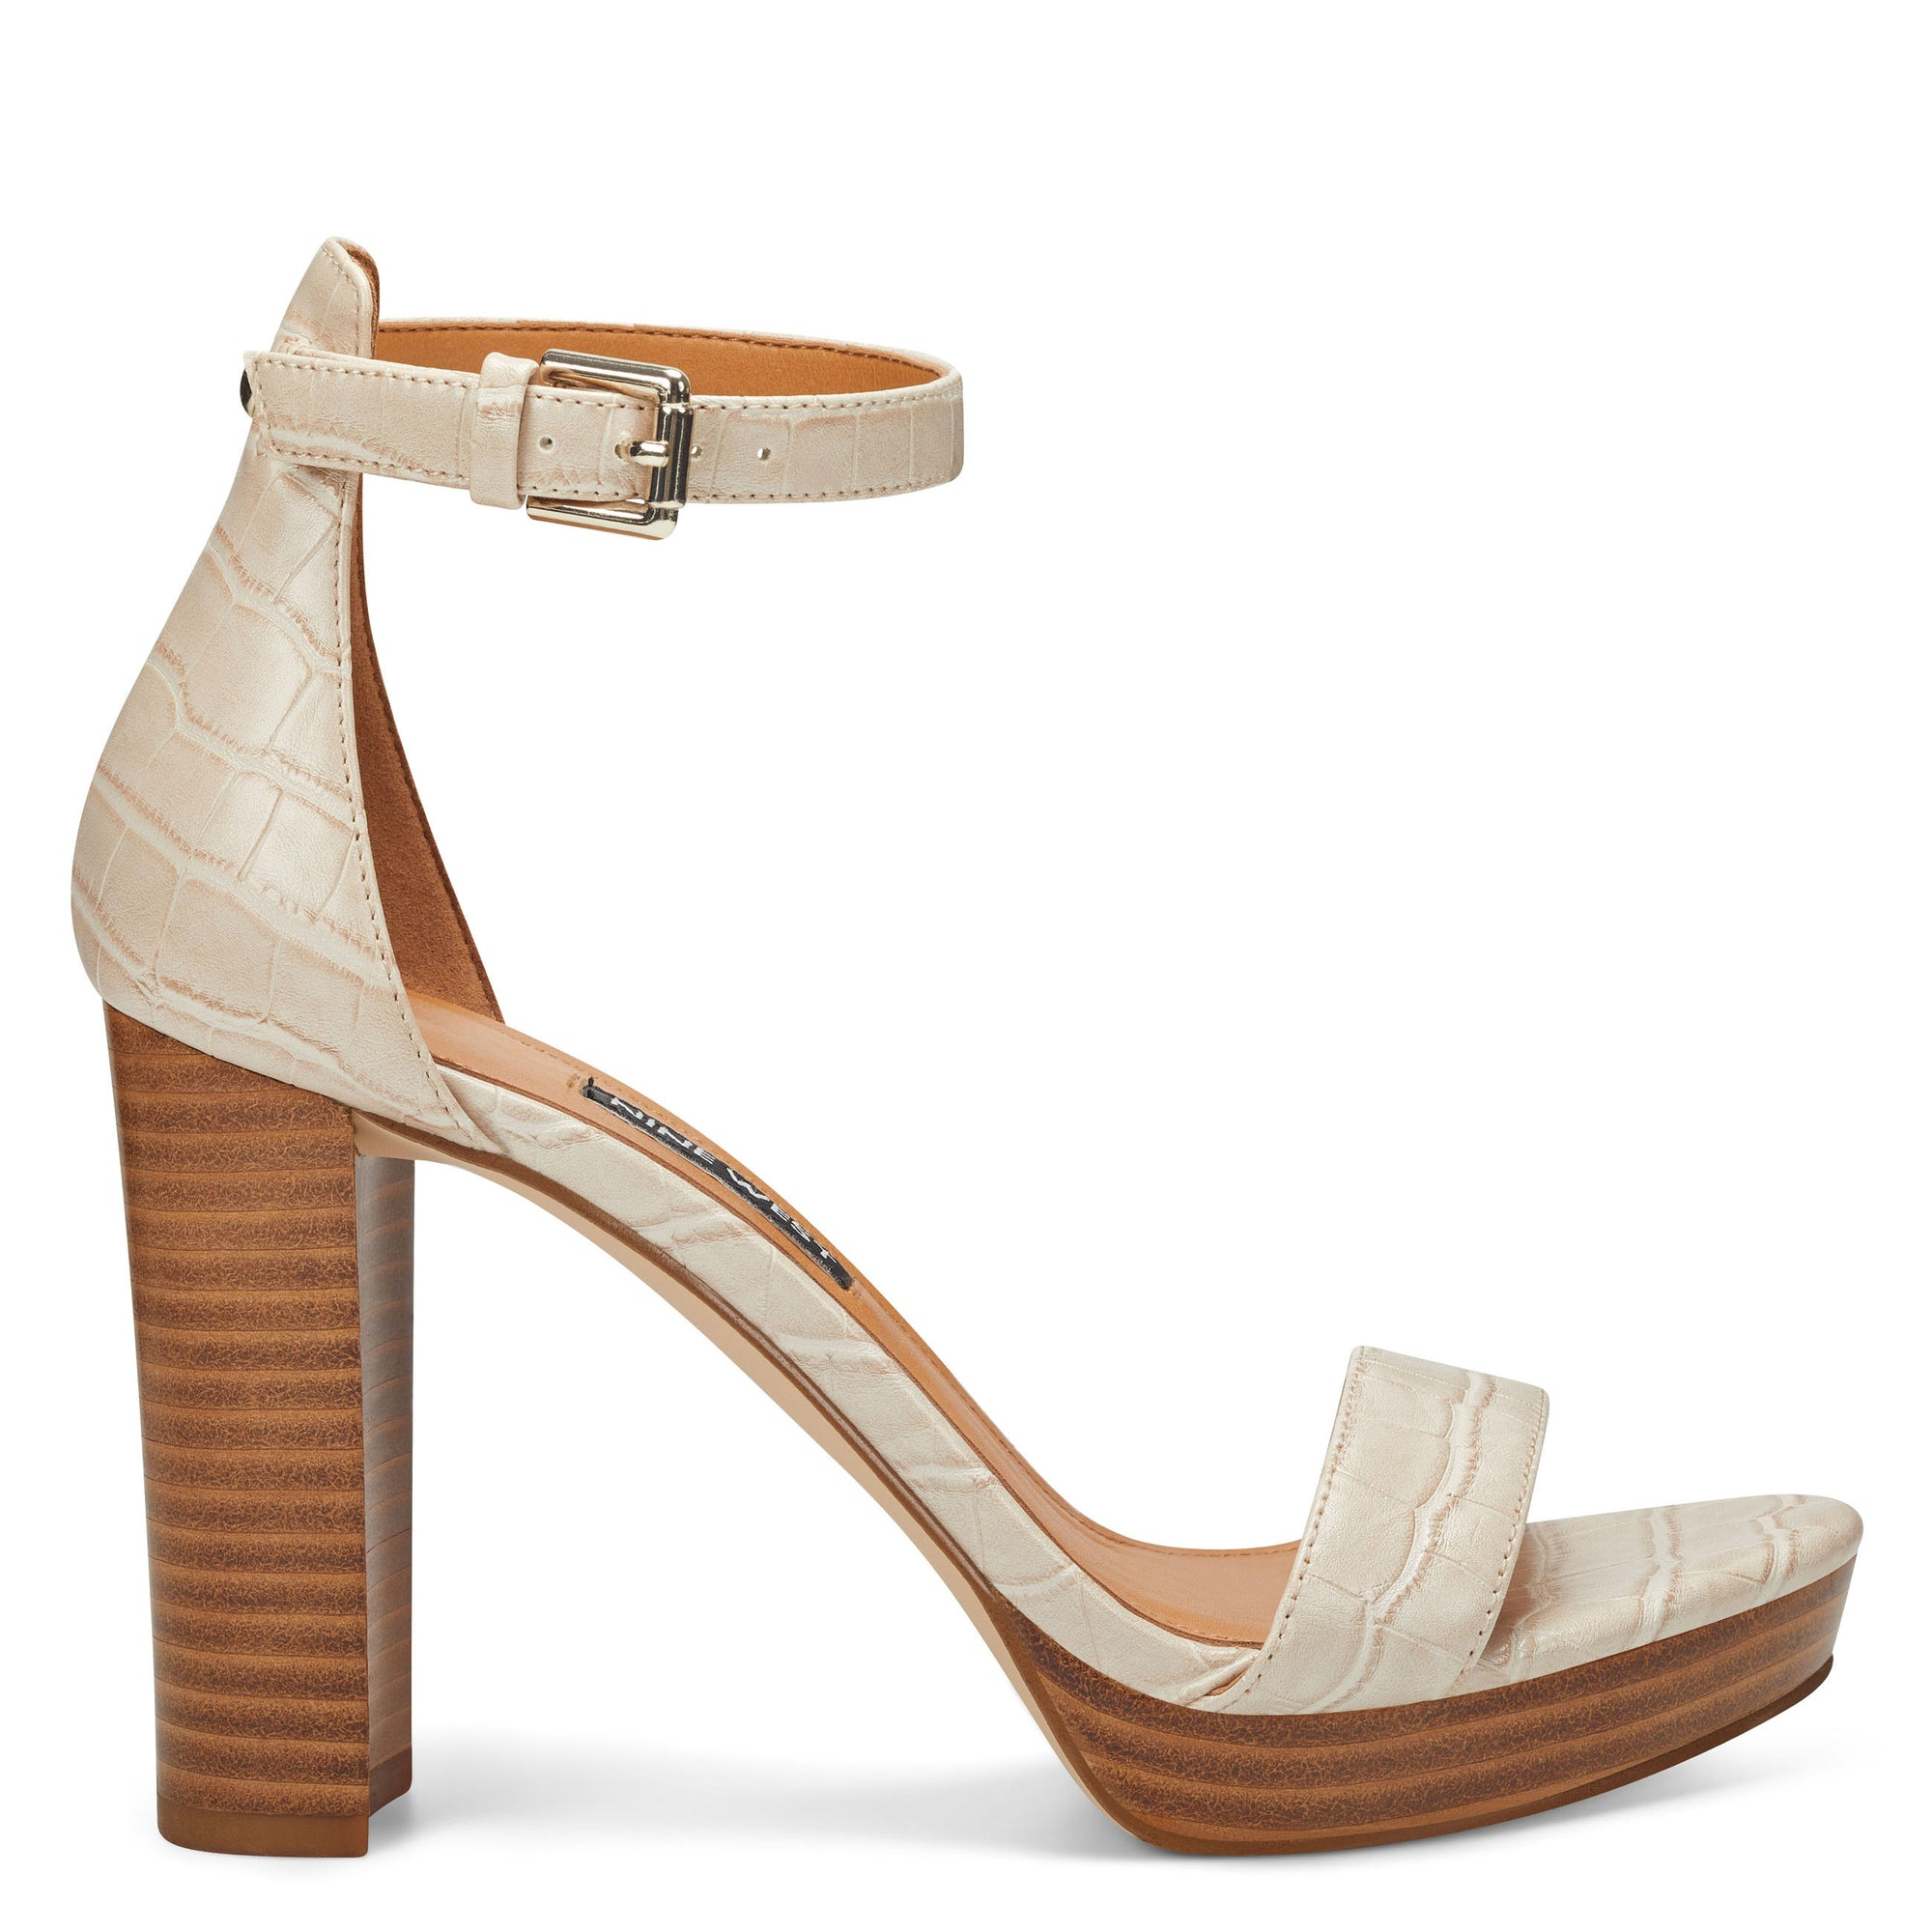 dempsey-platform-sandals-in-natural